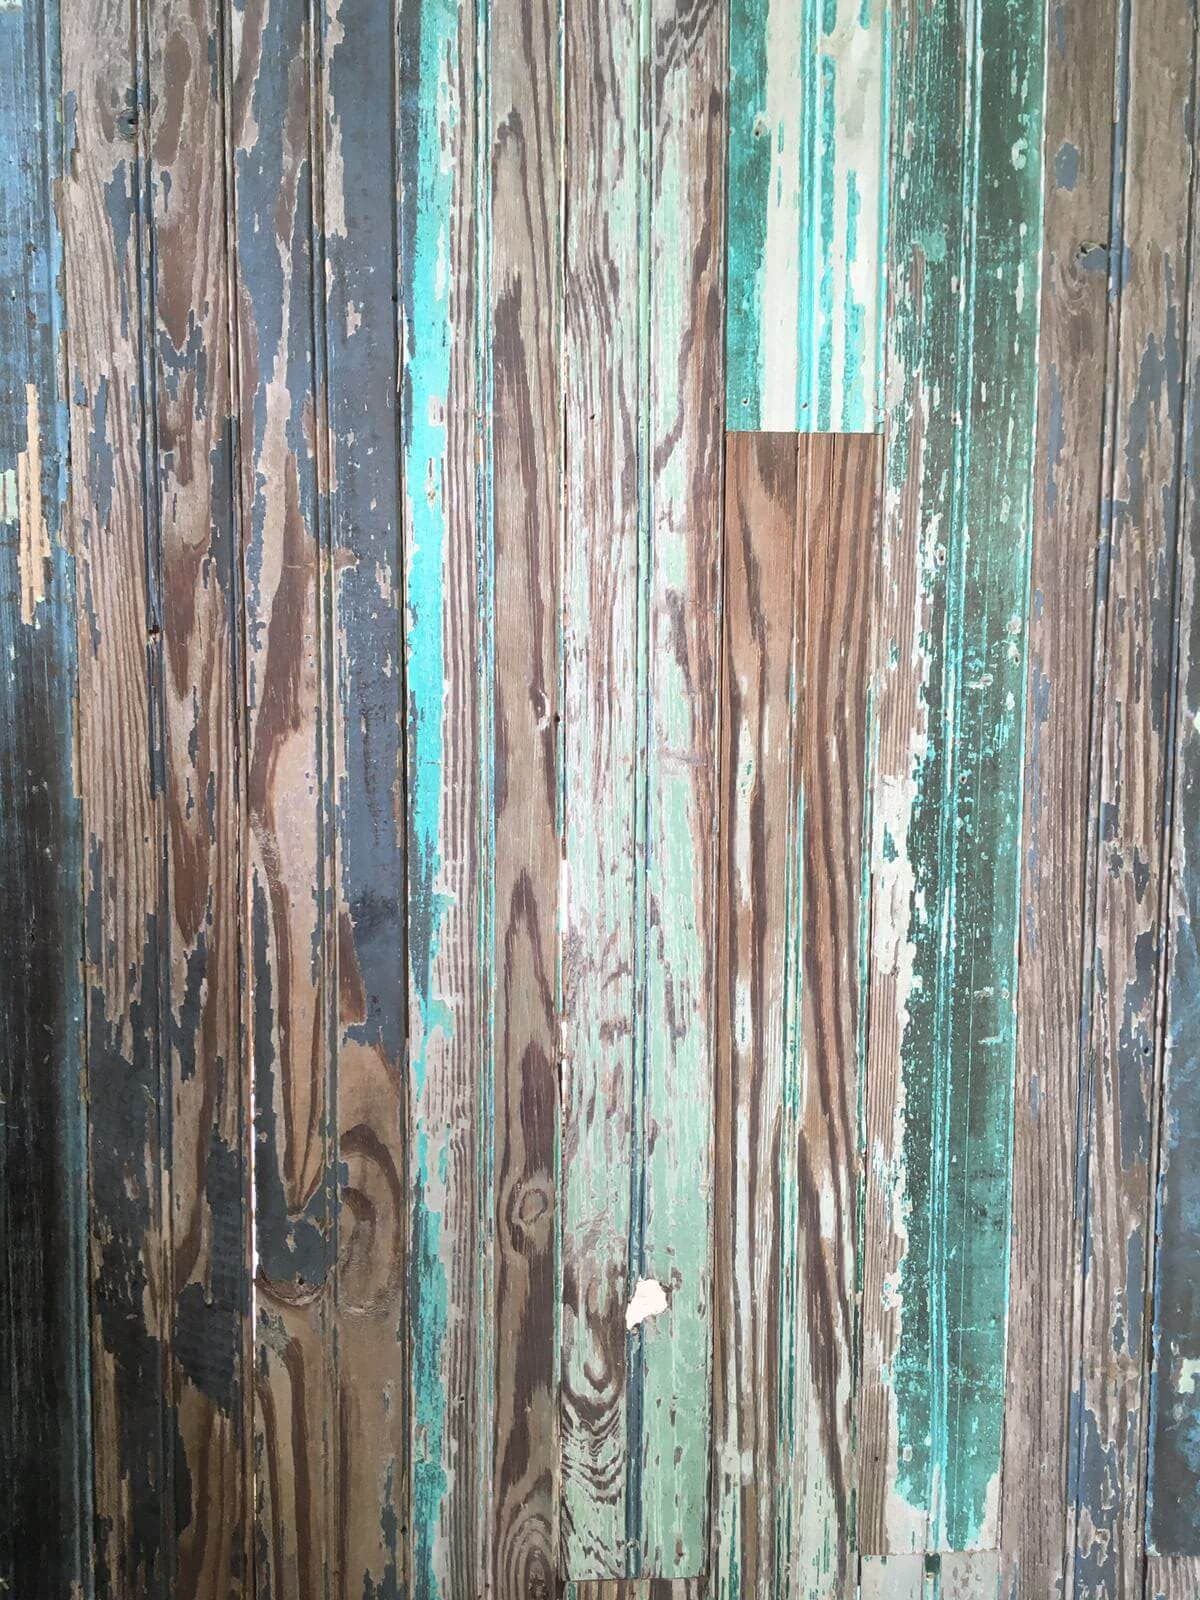 distressed narrow widths bead board planks with chipping colors